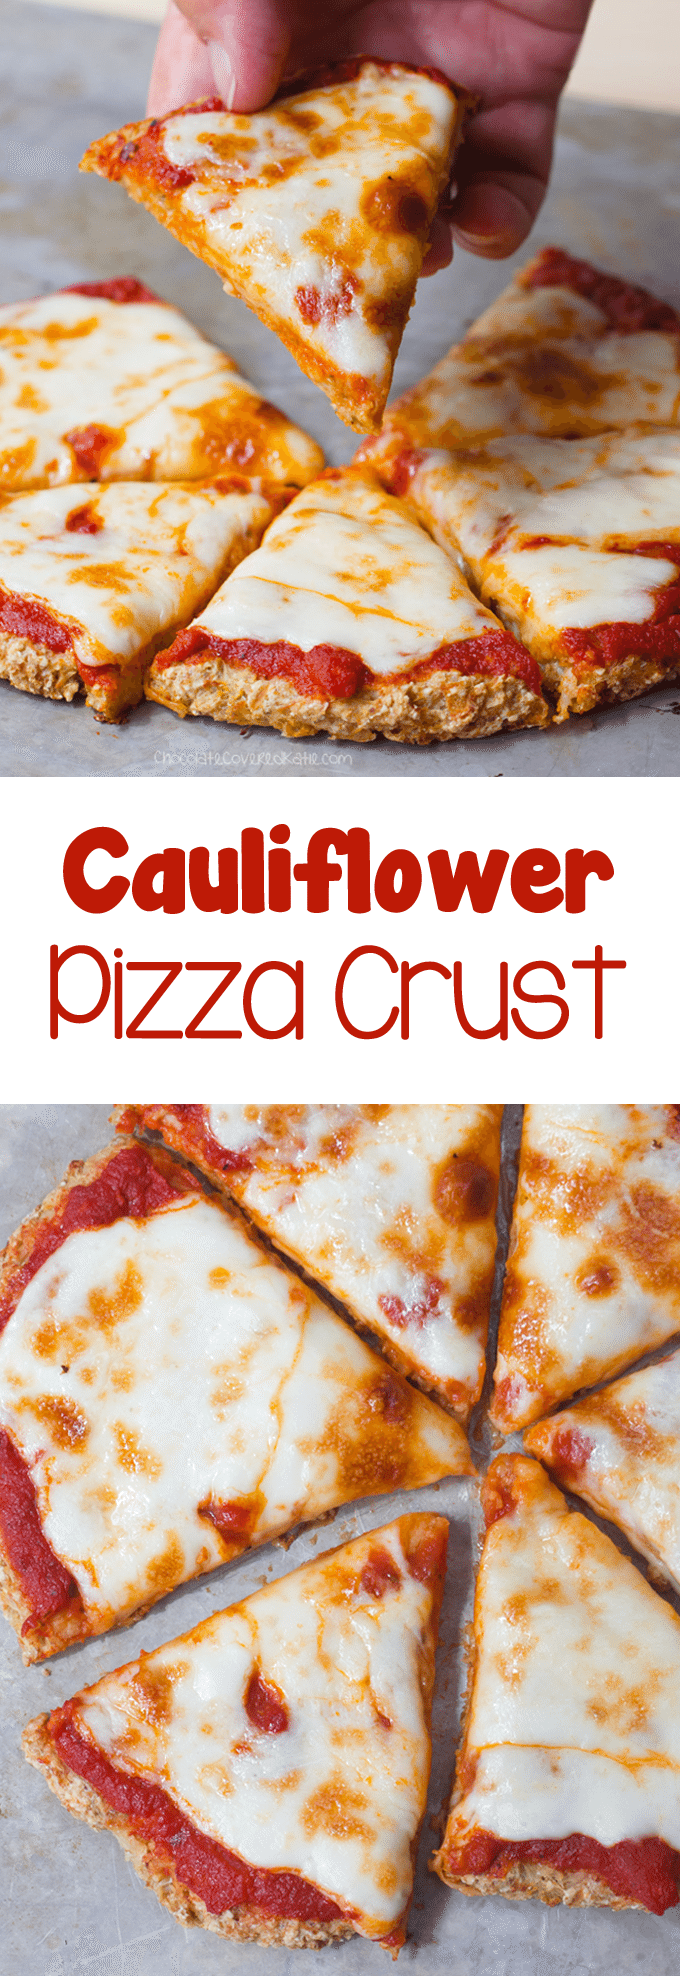 Cauliflower Pizza Crust - Ingredients: 1 cauliflower, 1/4 cup water, 1 tsp oregano, 2 tbsp... Full recipe: chocolatecoveredkatie.com/2016/09/05/cauliflower-pizza-crust-vegan/ @choccoveredkt